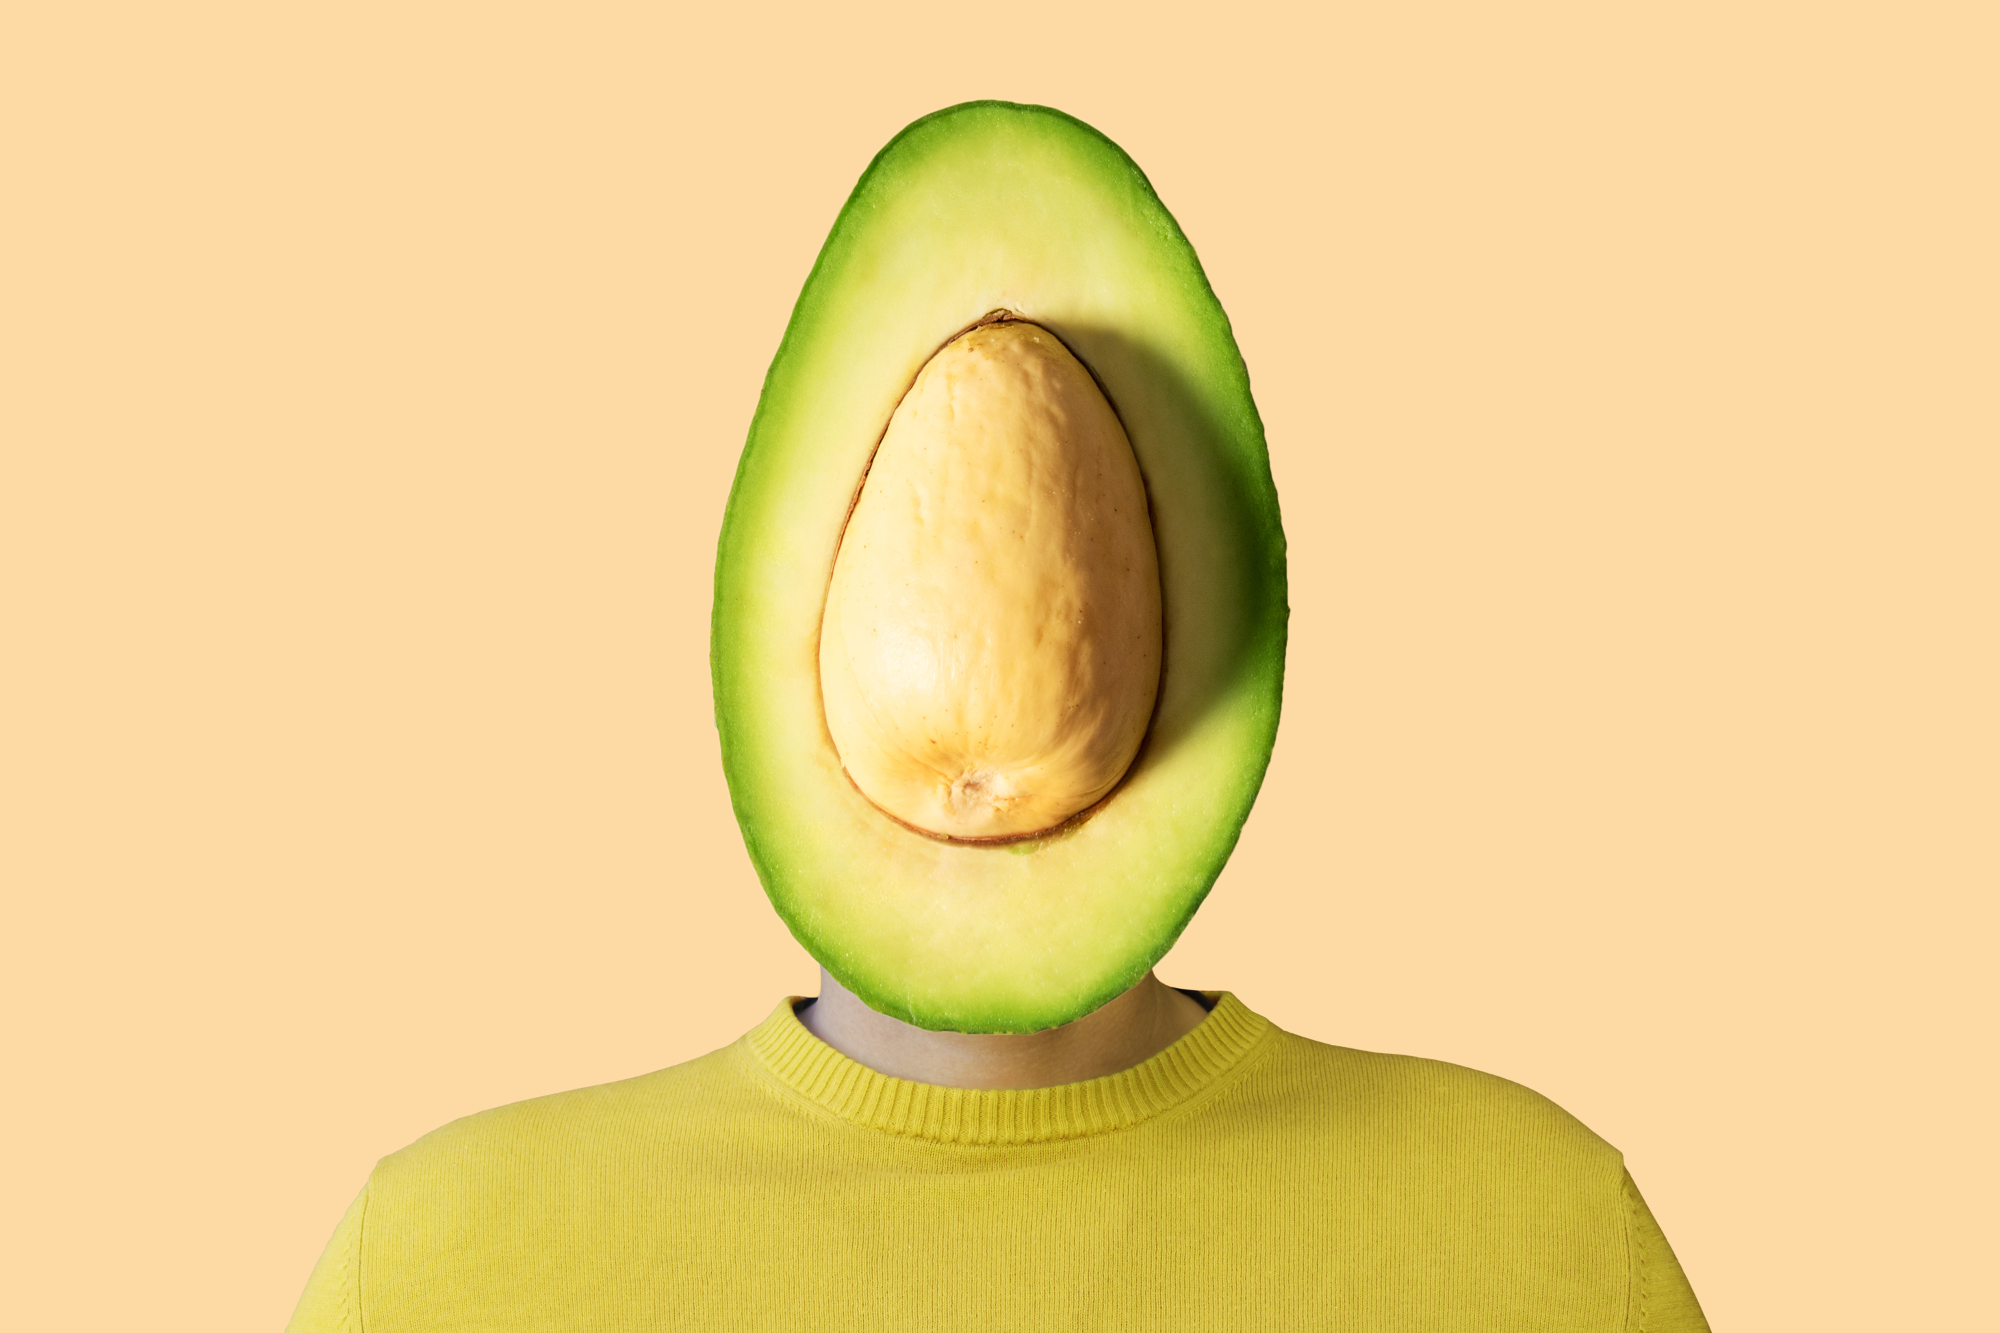 5a5720e1309ae-avocado-head_5a5720e130911.jpg